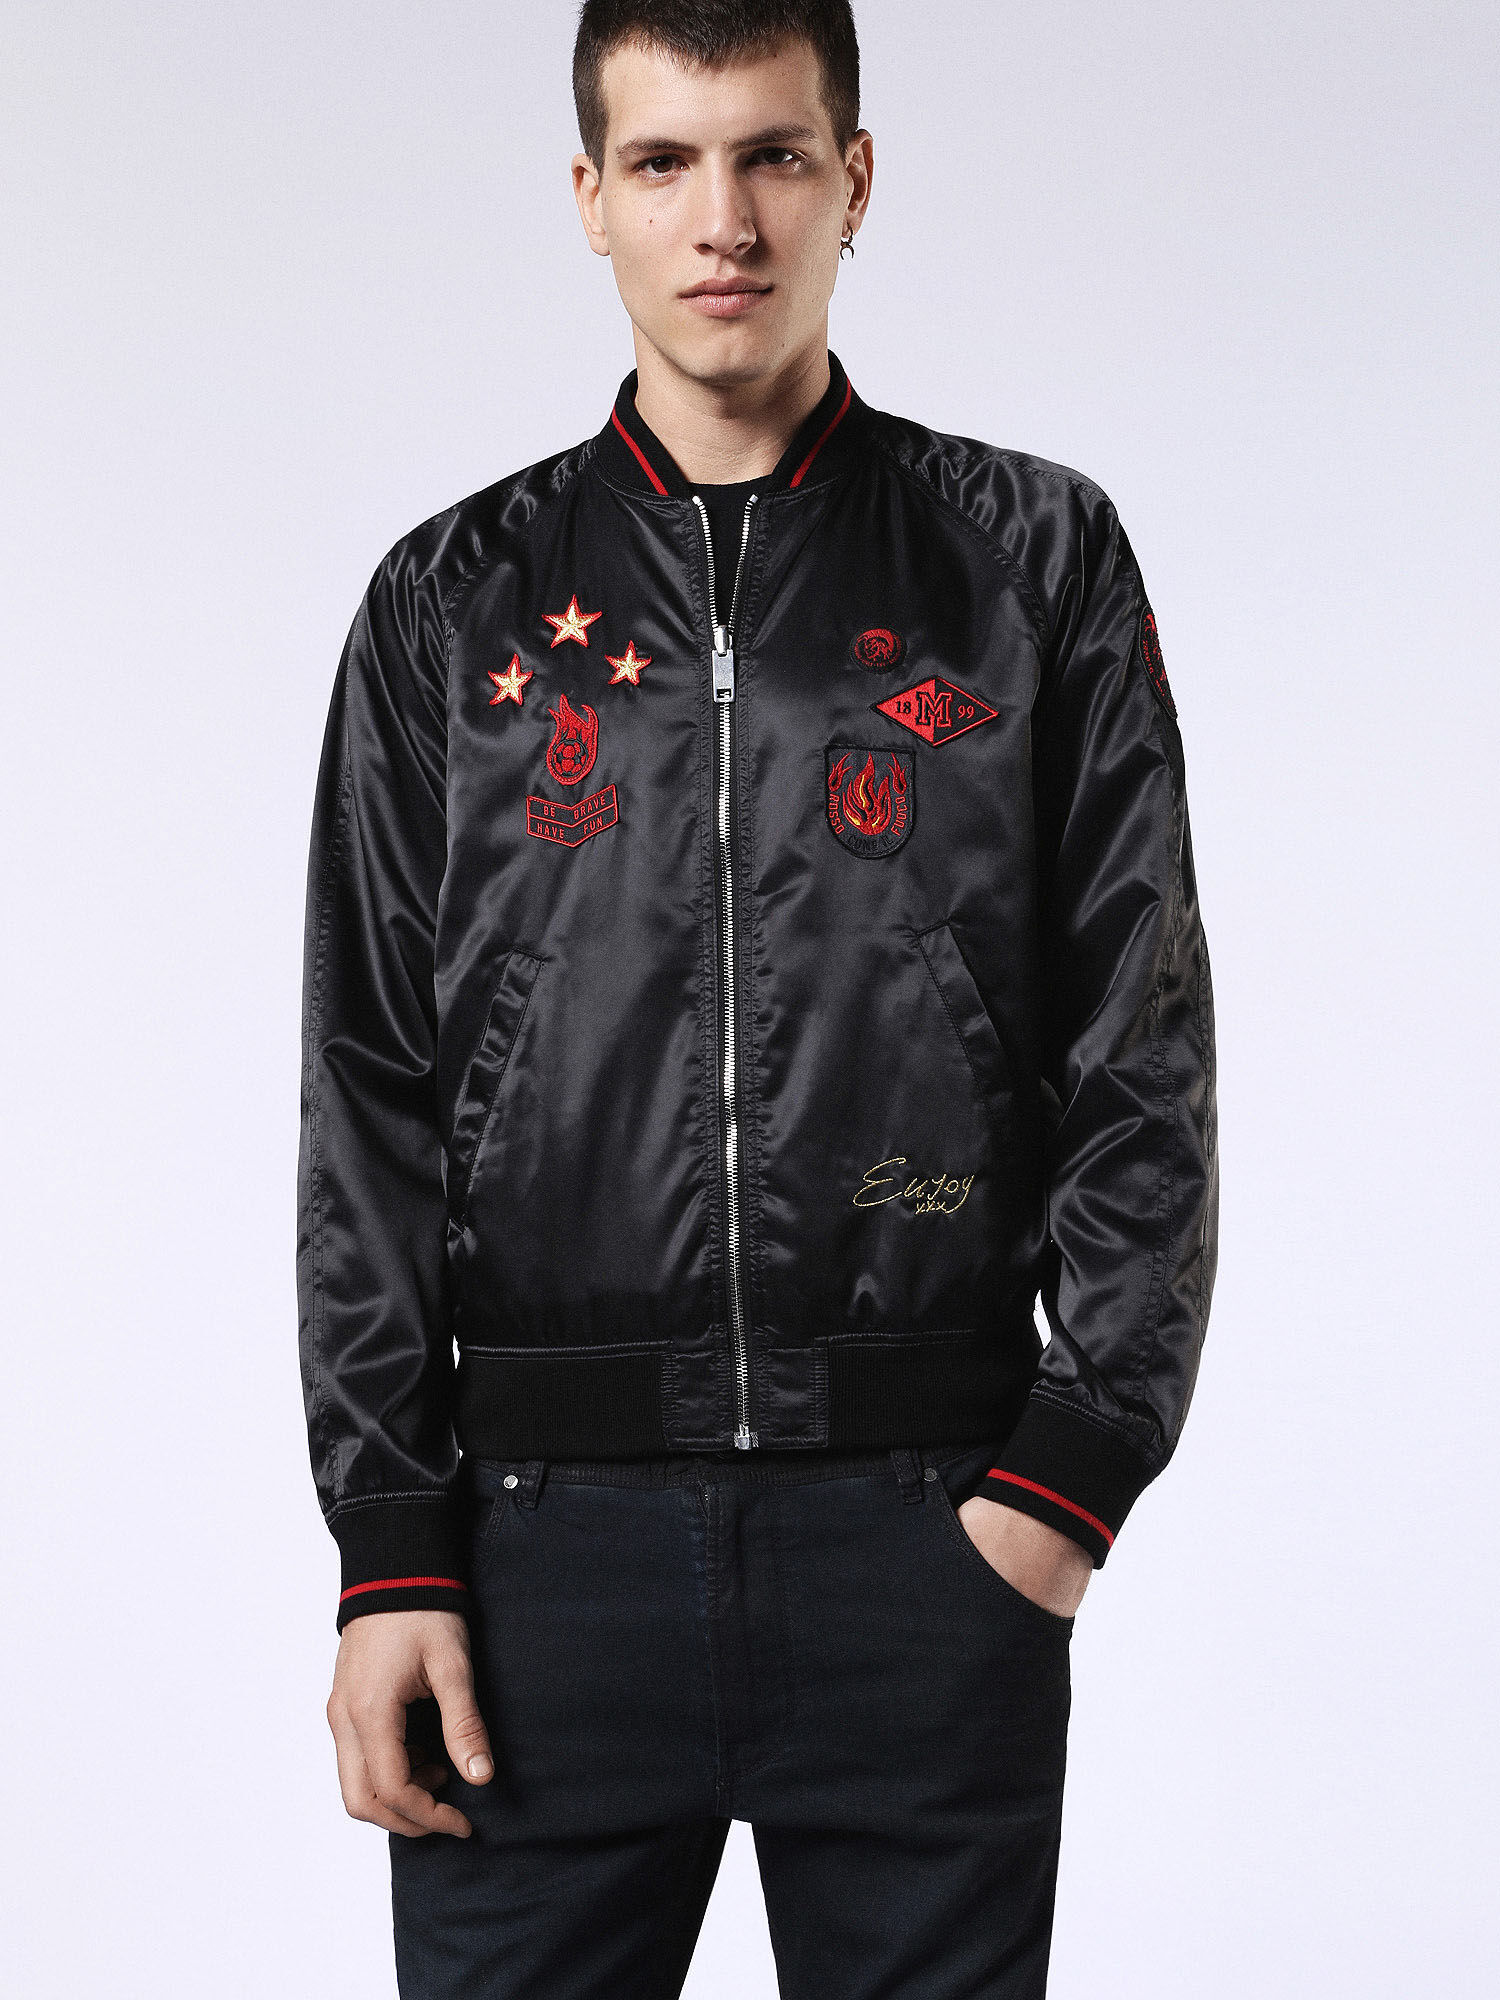 00S7RQ0LAQL Jackets Man DVL-BOMBER-RE by Diesel Black